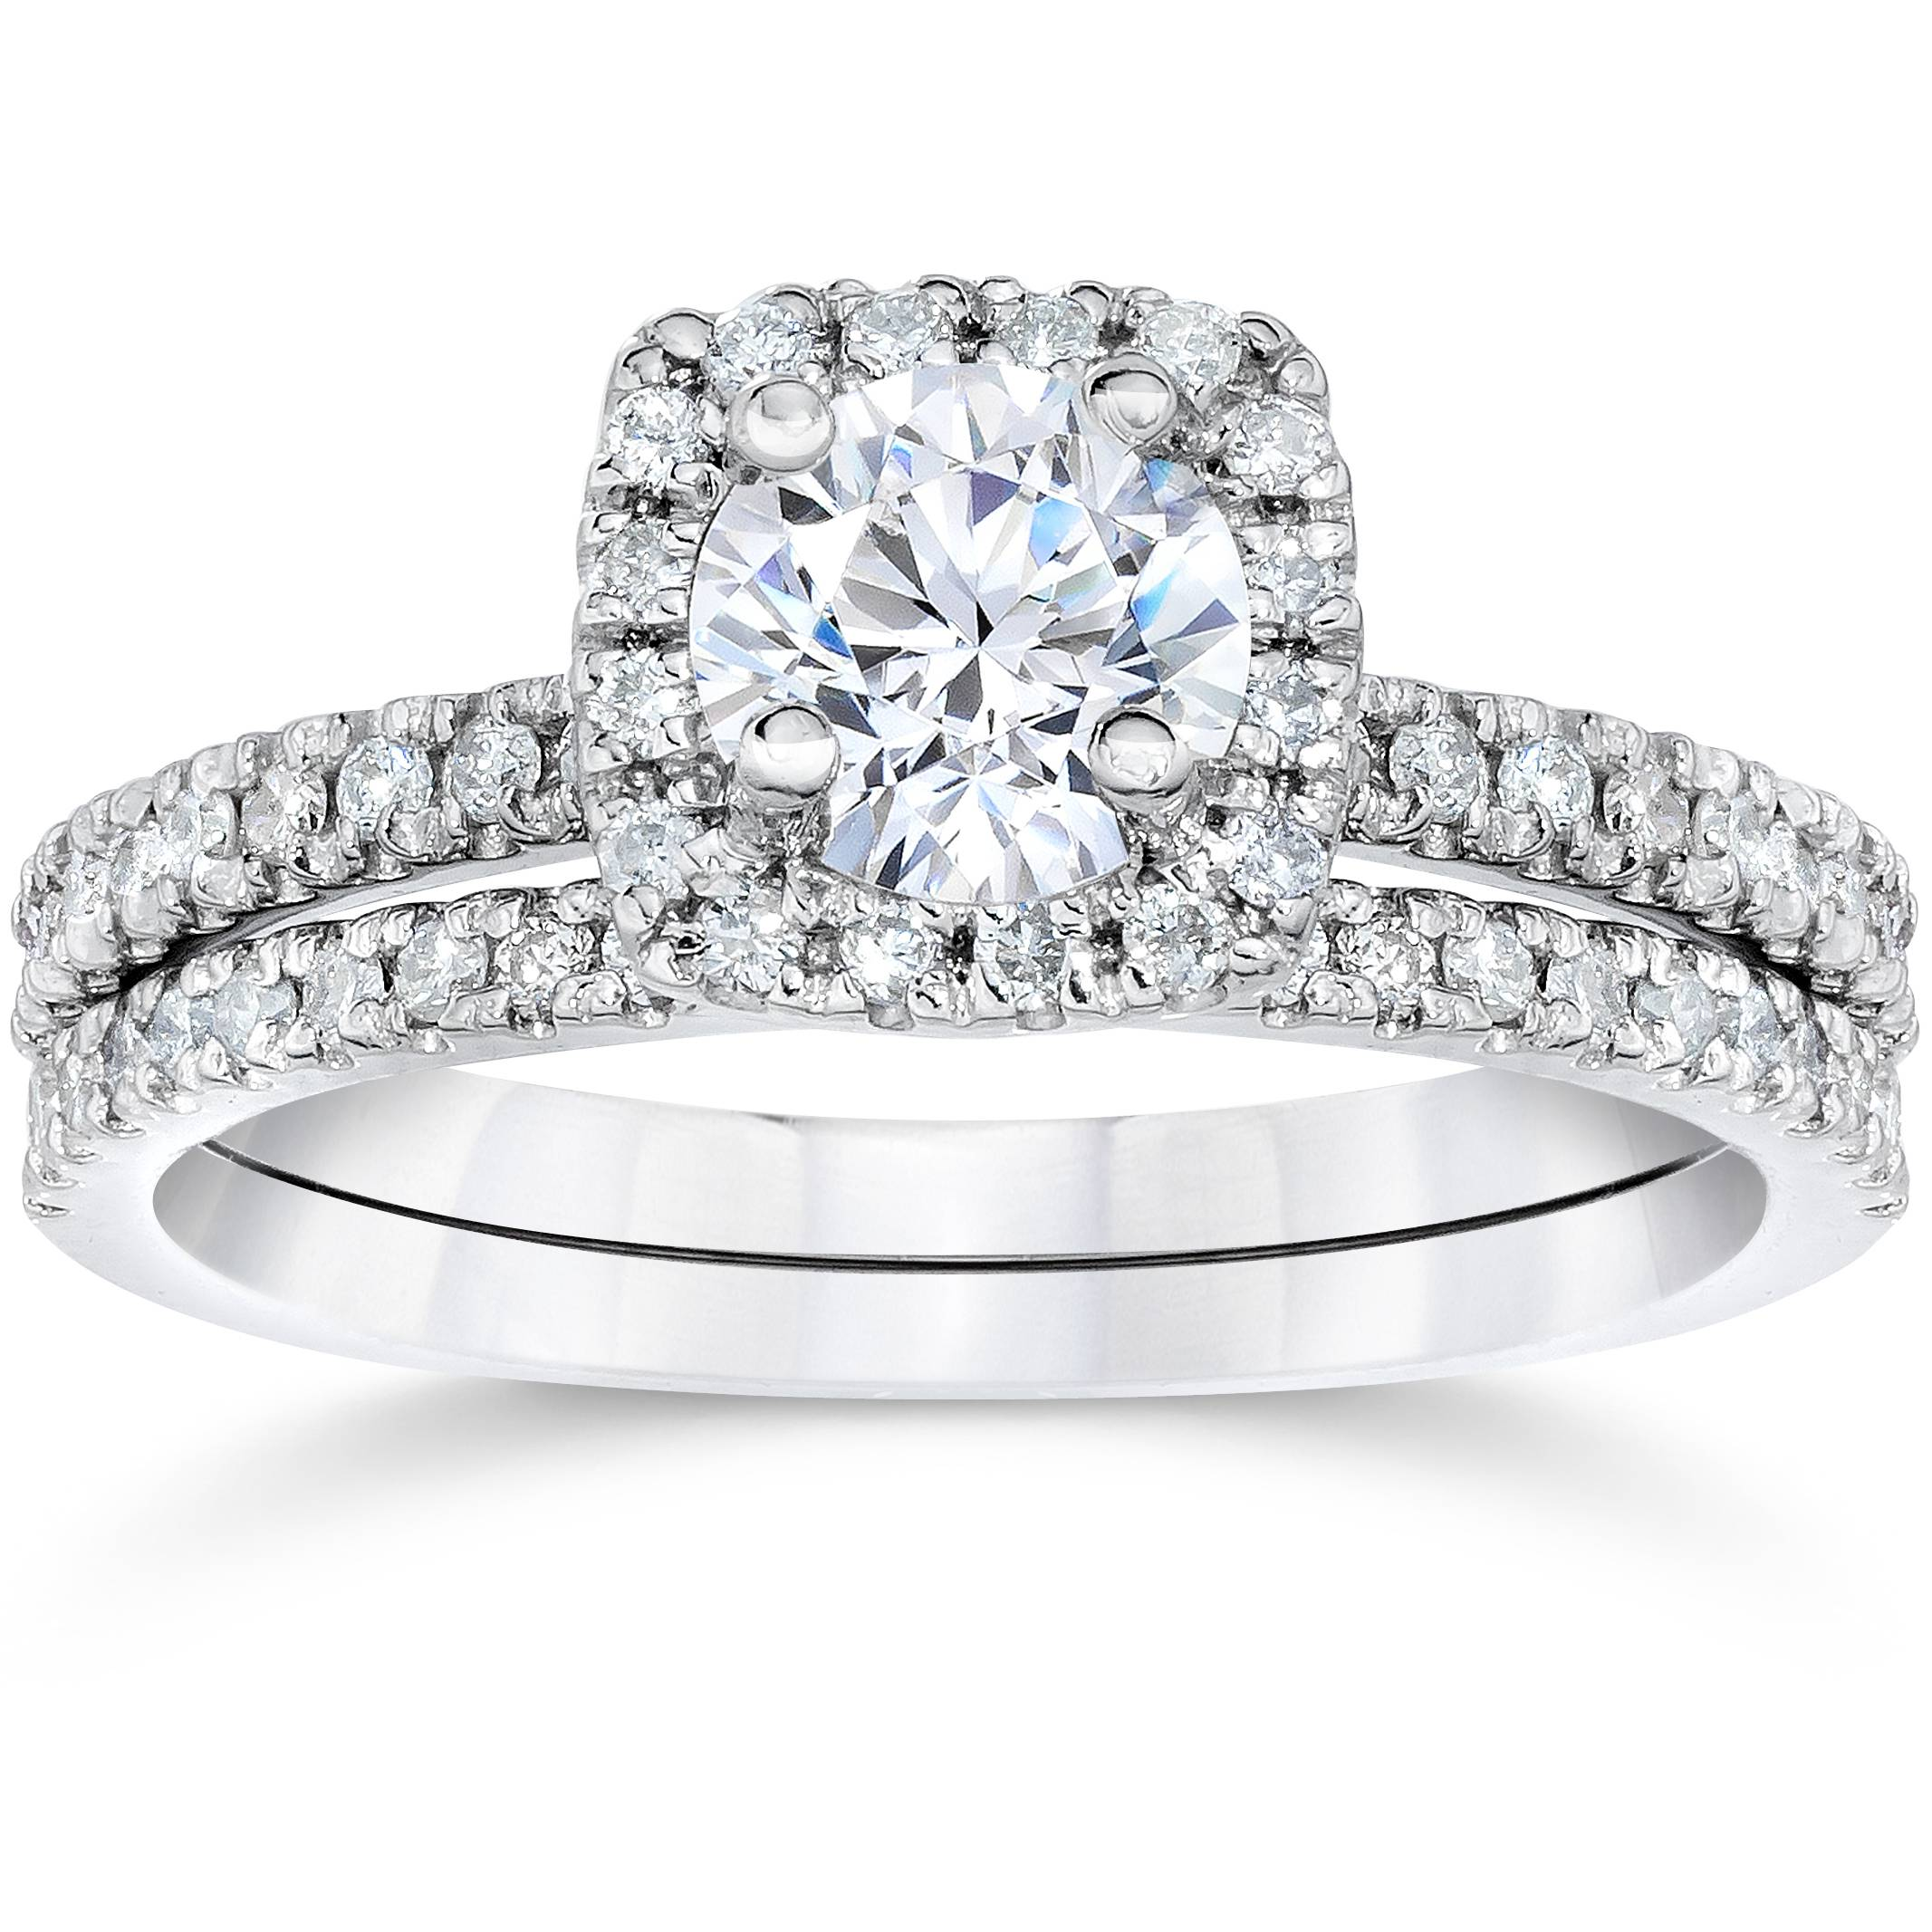 5 8ct cushion halo real diamond engagement wedding ring for Wedding band under engagement ring